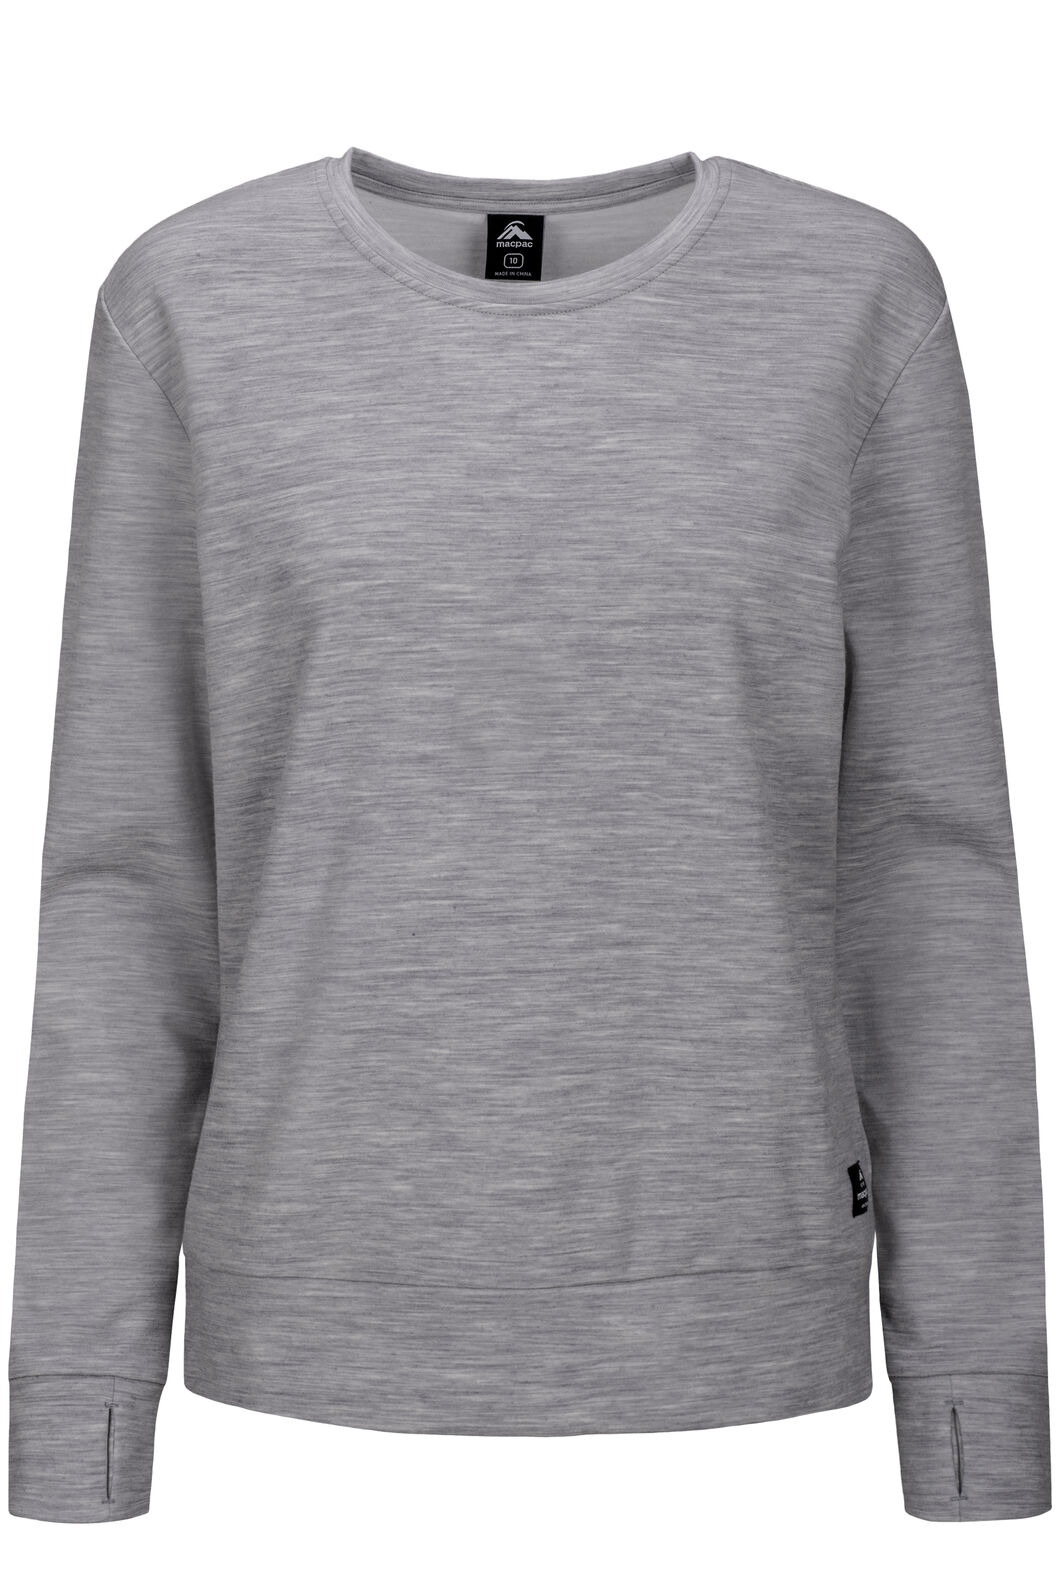 Macpac 280 Merino Long Sleeve Crew — Women's, Light Grey Marle, hi-res